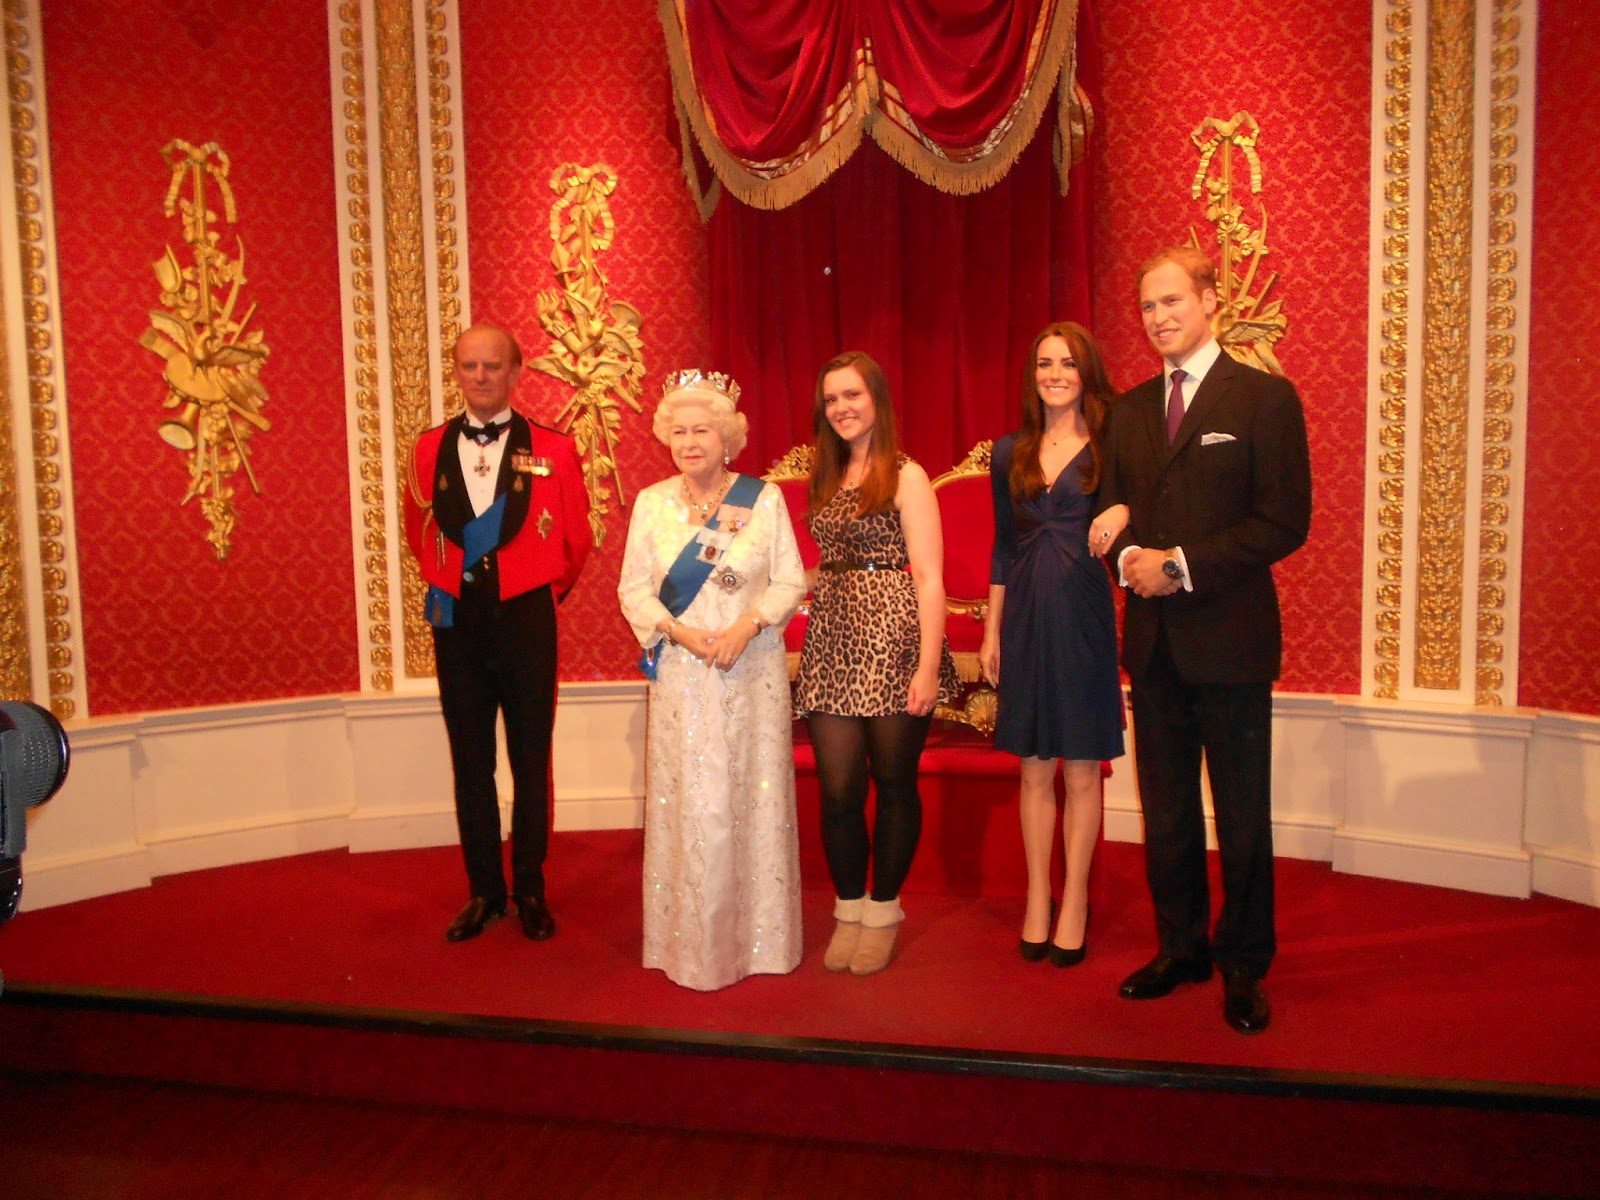 British-royal-family-Wax-Statue-in-Madame-Tussauds-London